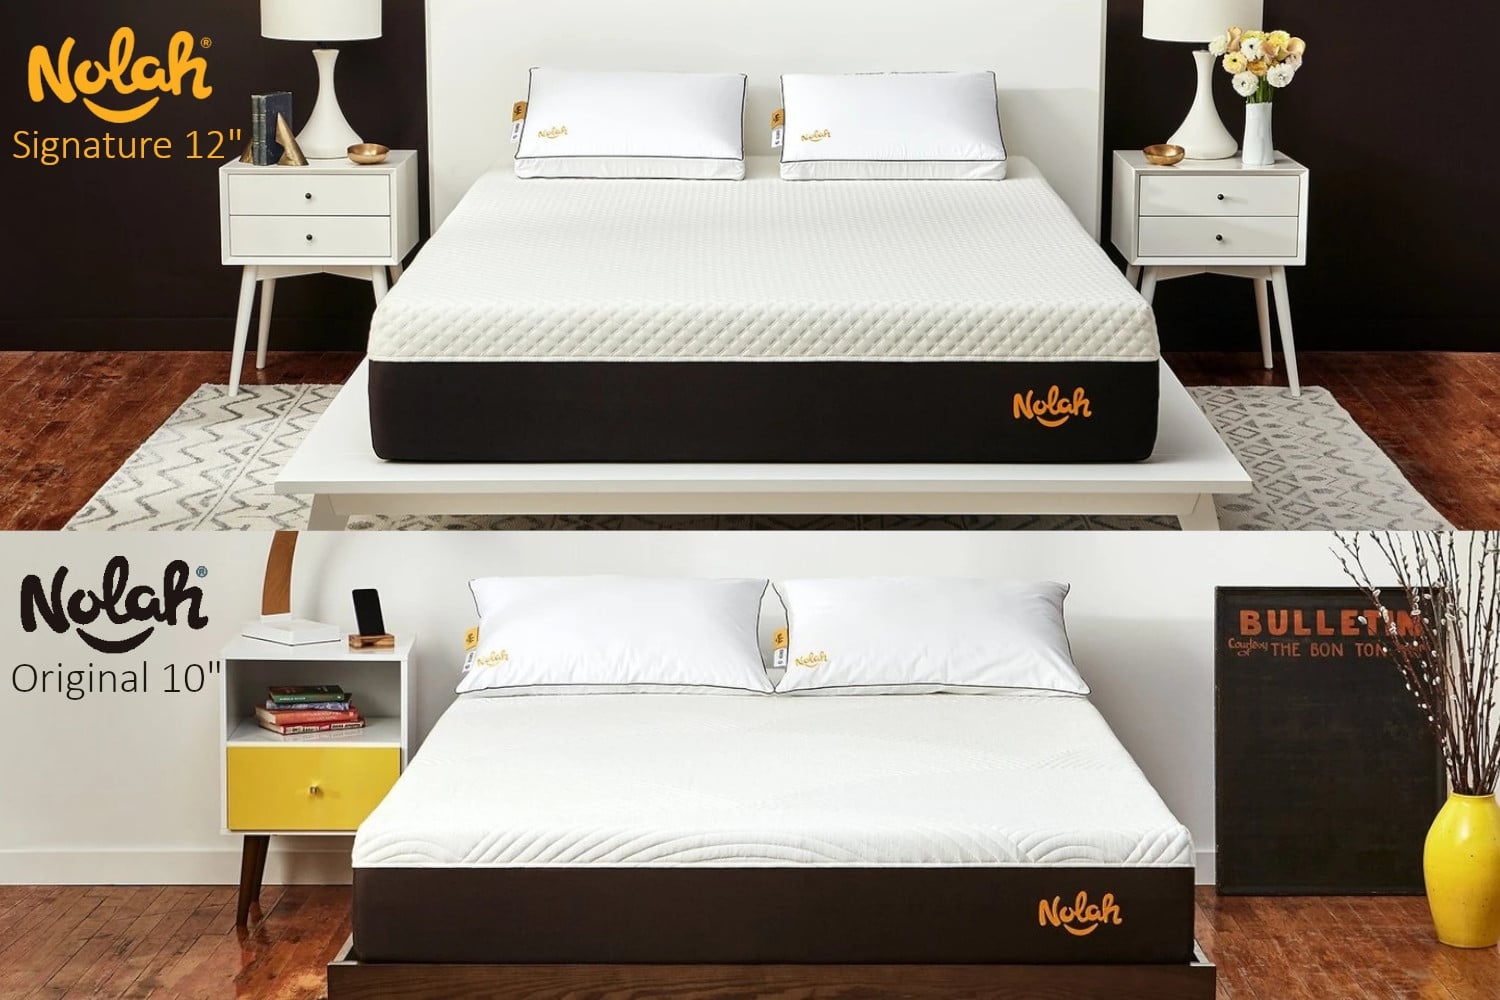 nolah vs nolah 12 vs 10 mattress comparison review hero image